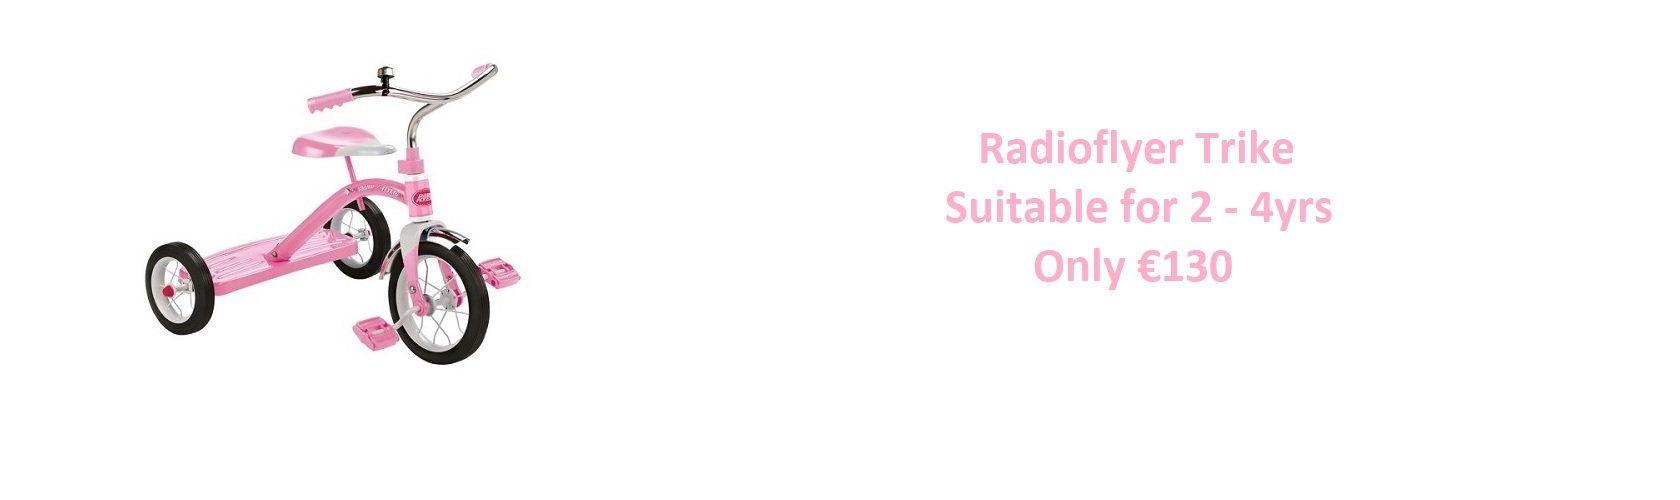 http://bigwheelcycles.ie/wp-content/uploads/2018/10/radioflyer-banner-pink.jpg